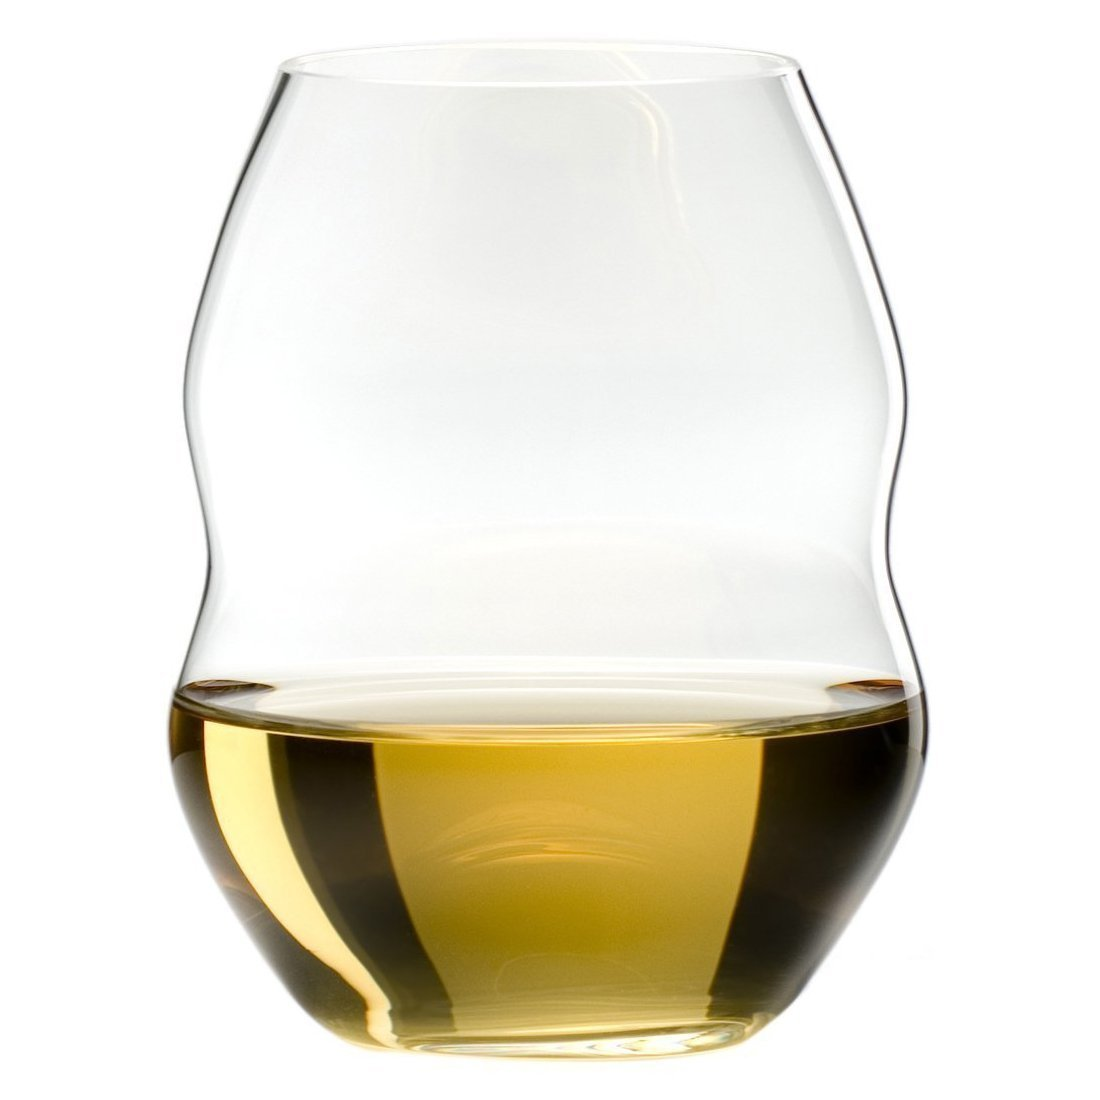 Riedel Swirl White Wine Glasses, Set of 4 by Riedel